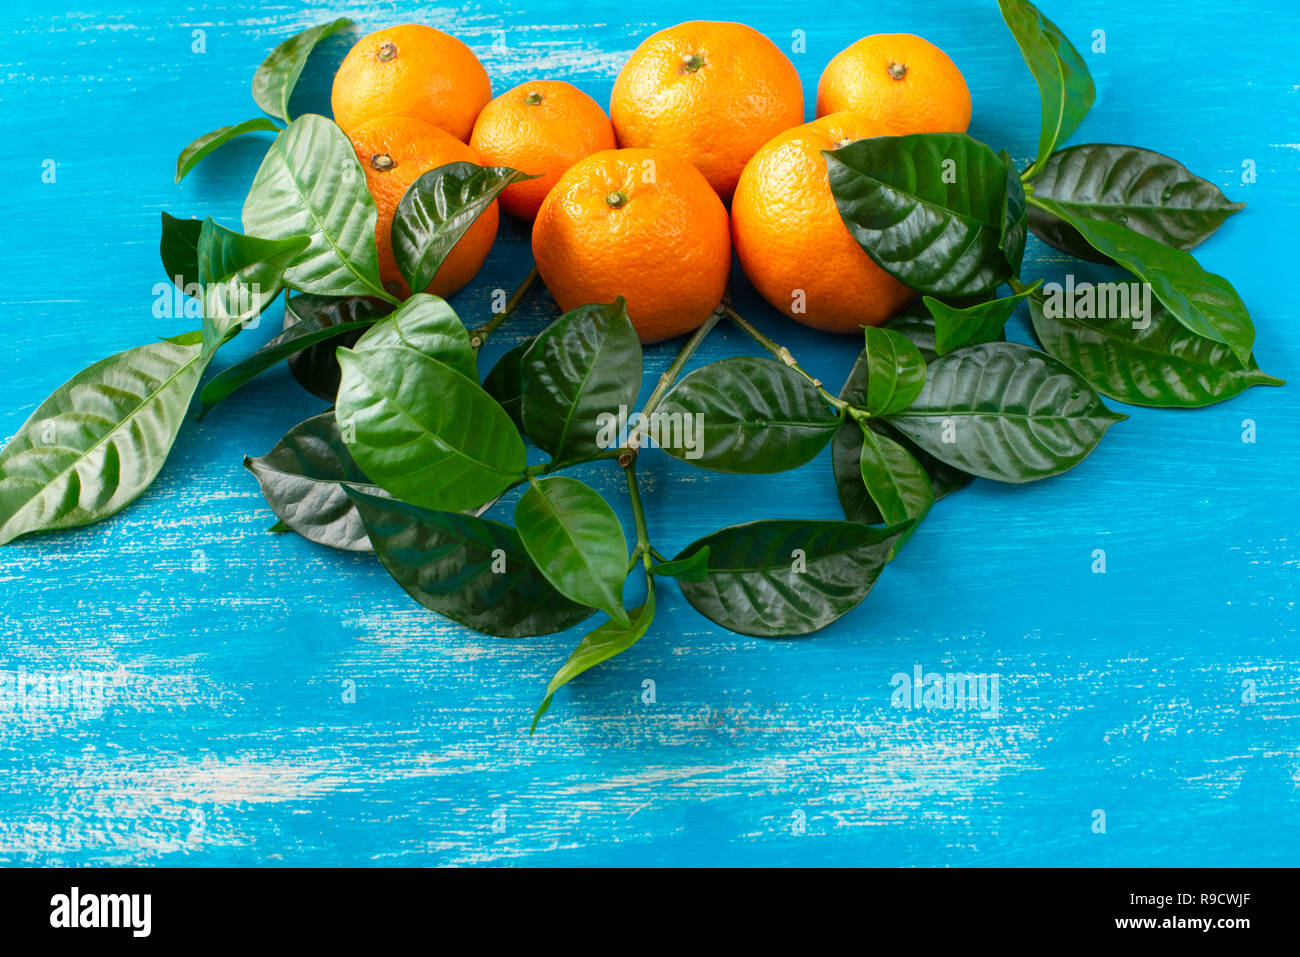 Ripe tangerines with green leaves on a bright blue background. Top view flat lay copy space - Stock Image